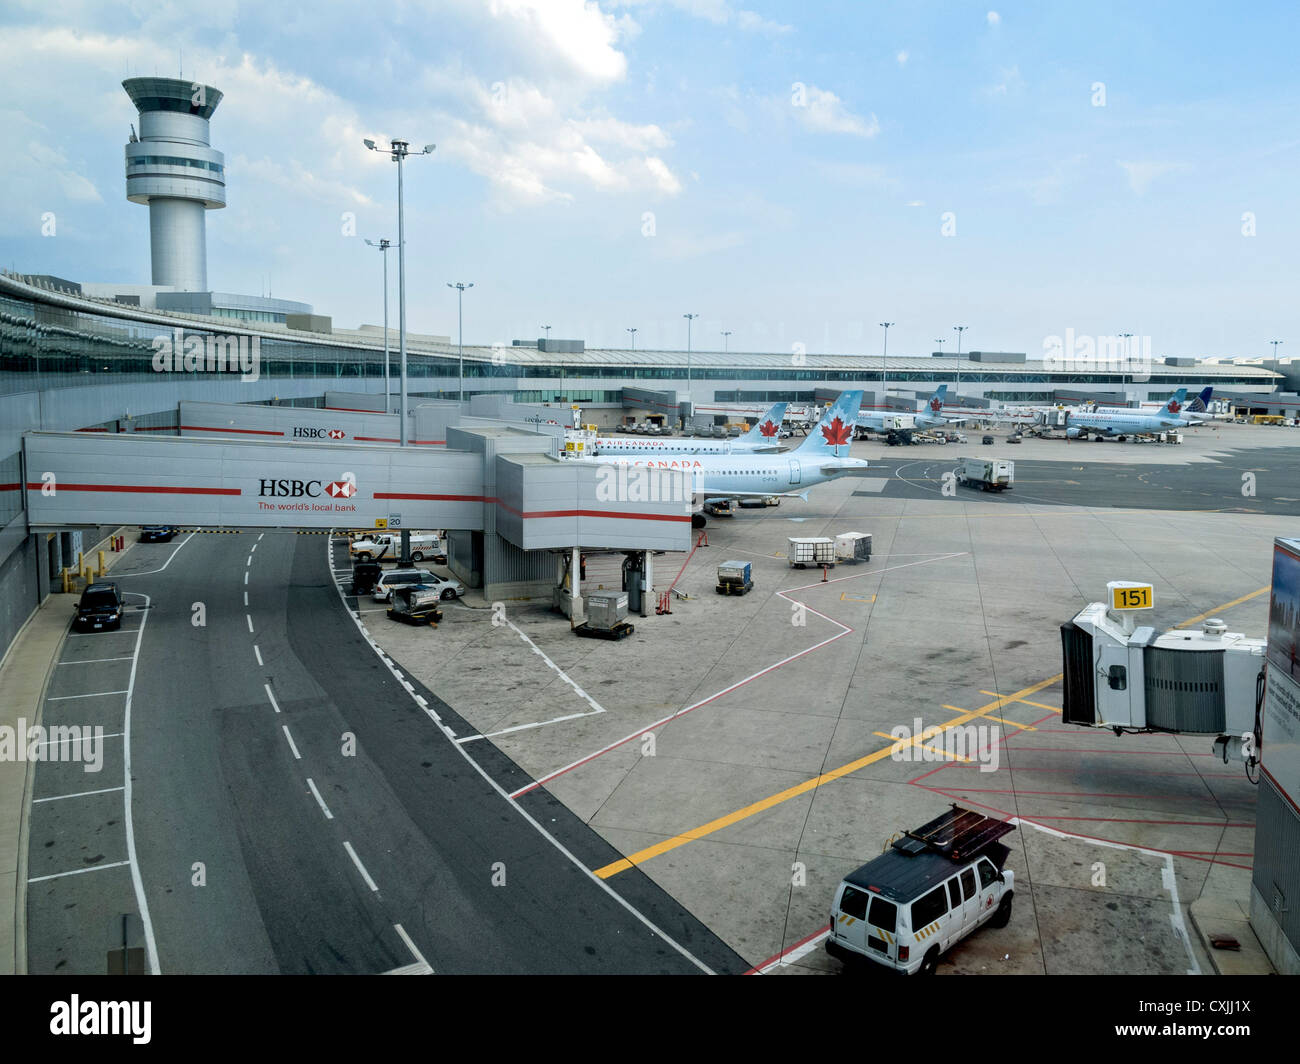 Tarmac with jets unloading and loading passengers, Pearson International Airport, Toronto, Canada. - Stock Image